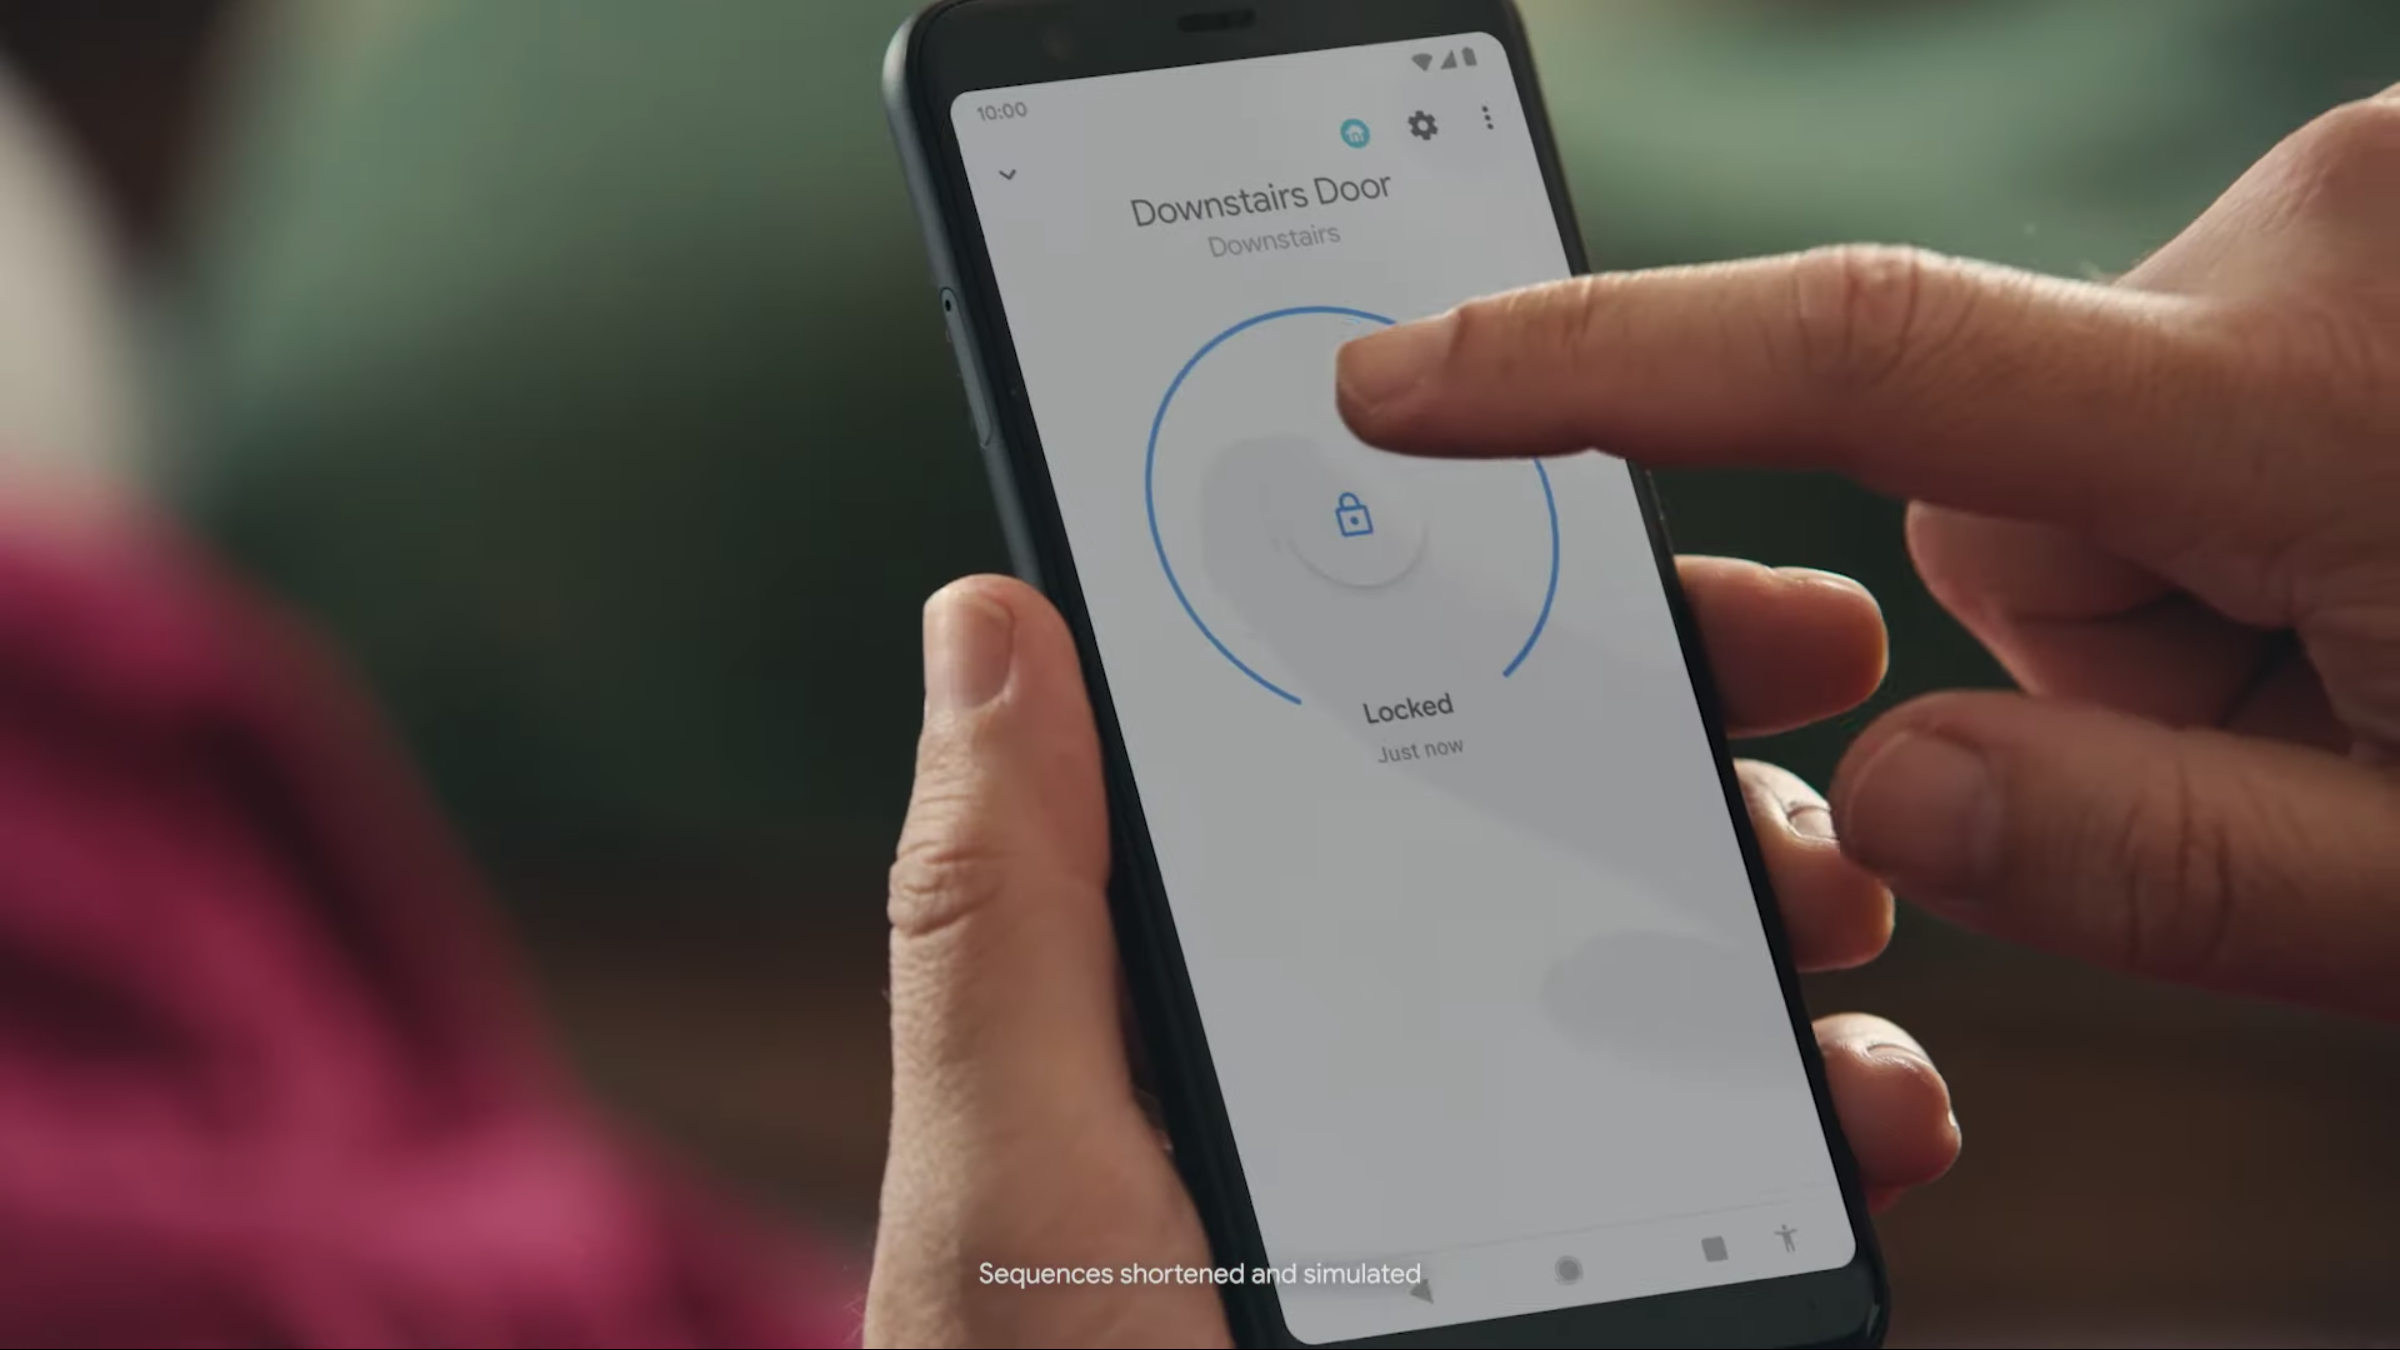 Google promo shows you could soon open Nest smart locks straight from the Home app